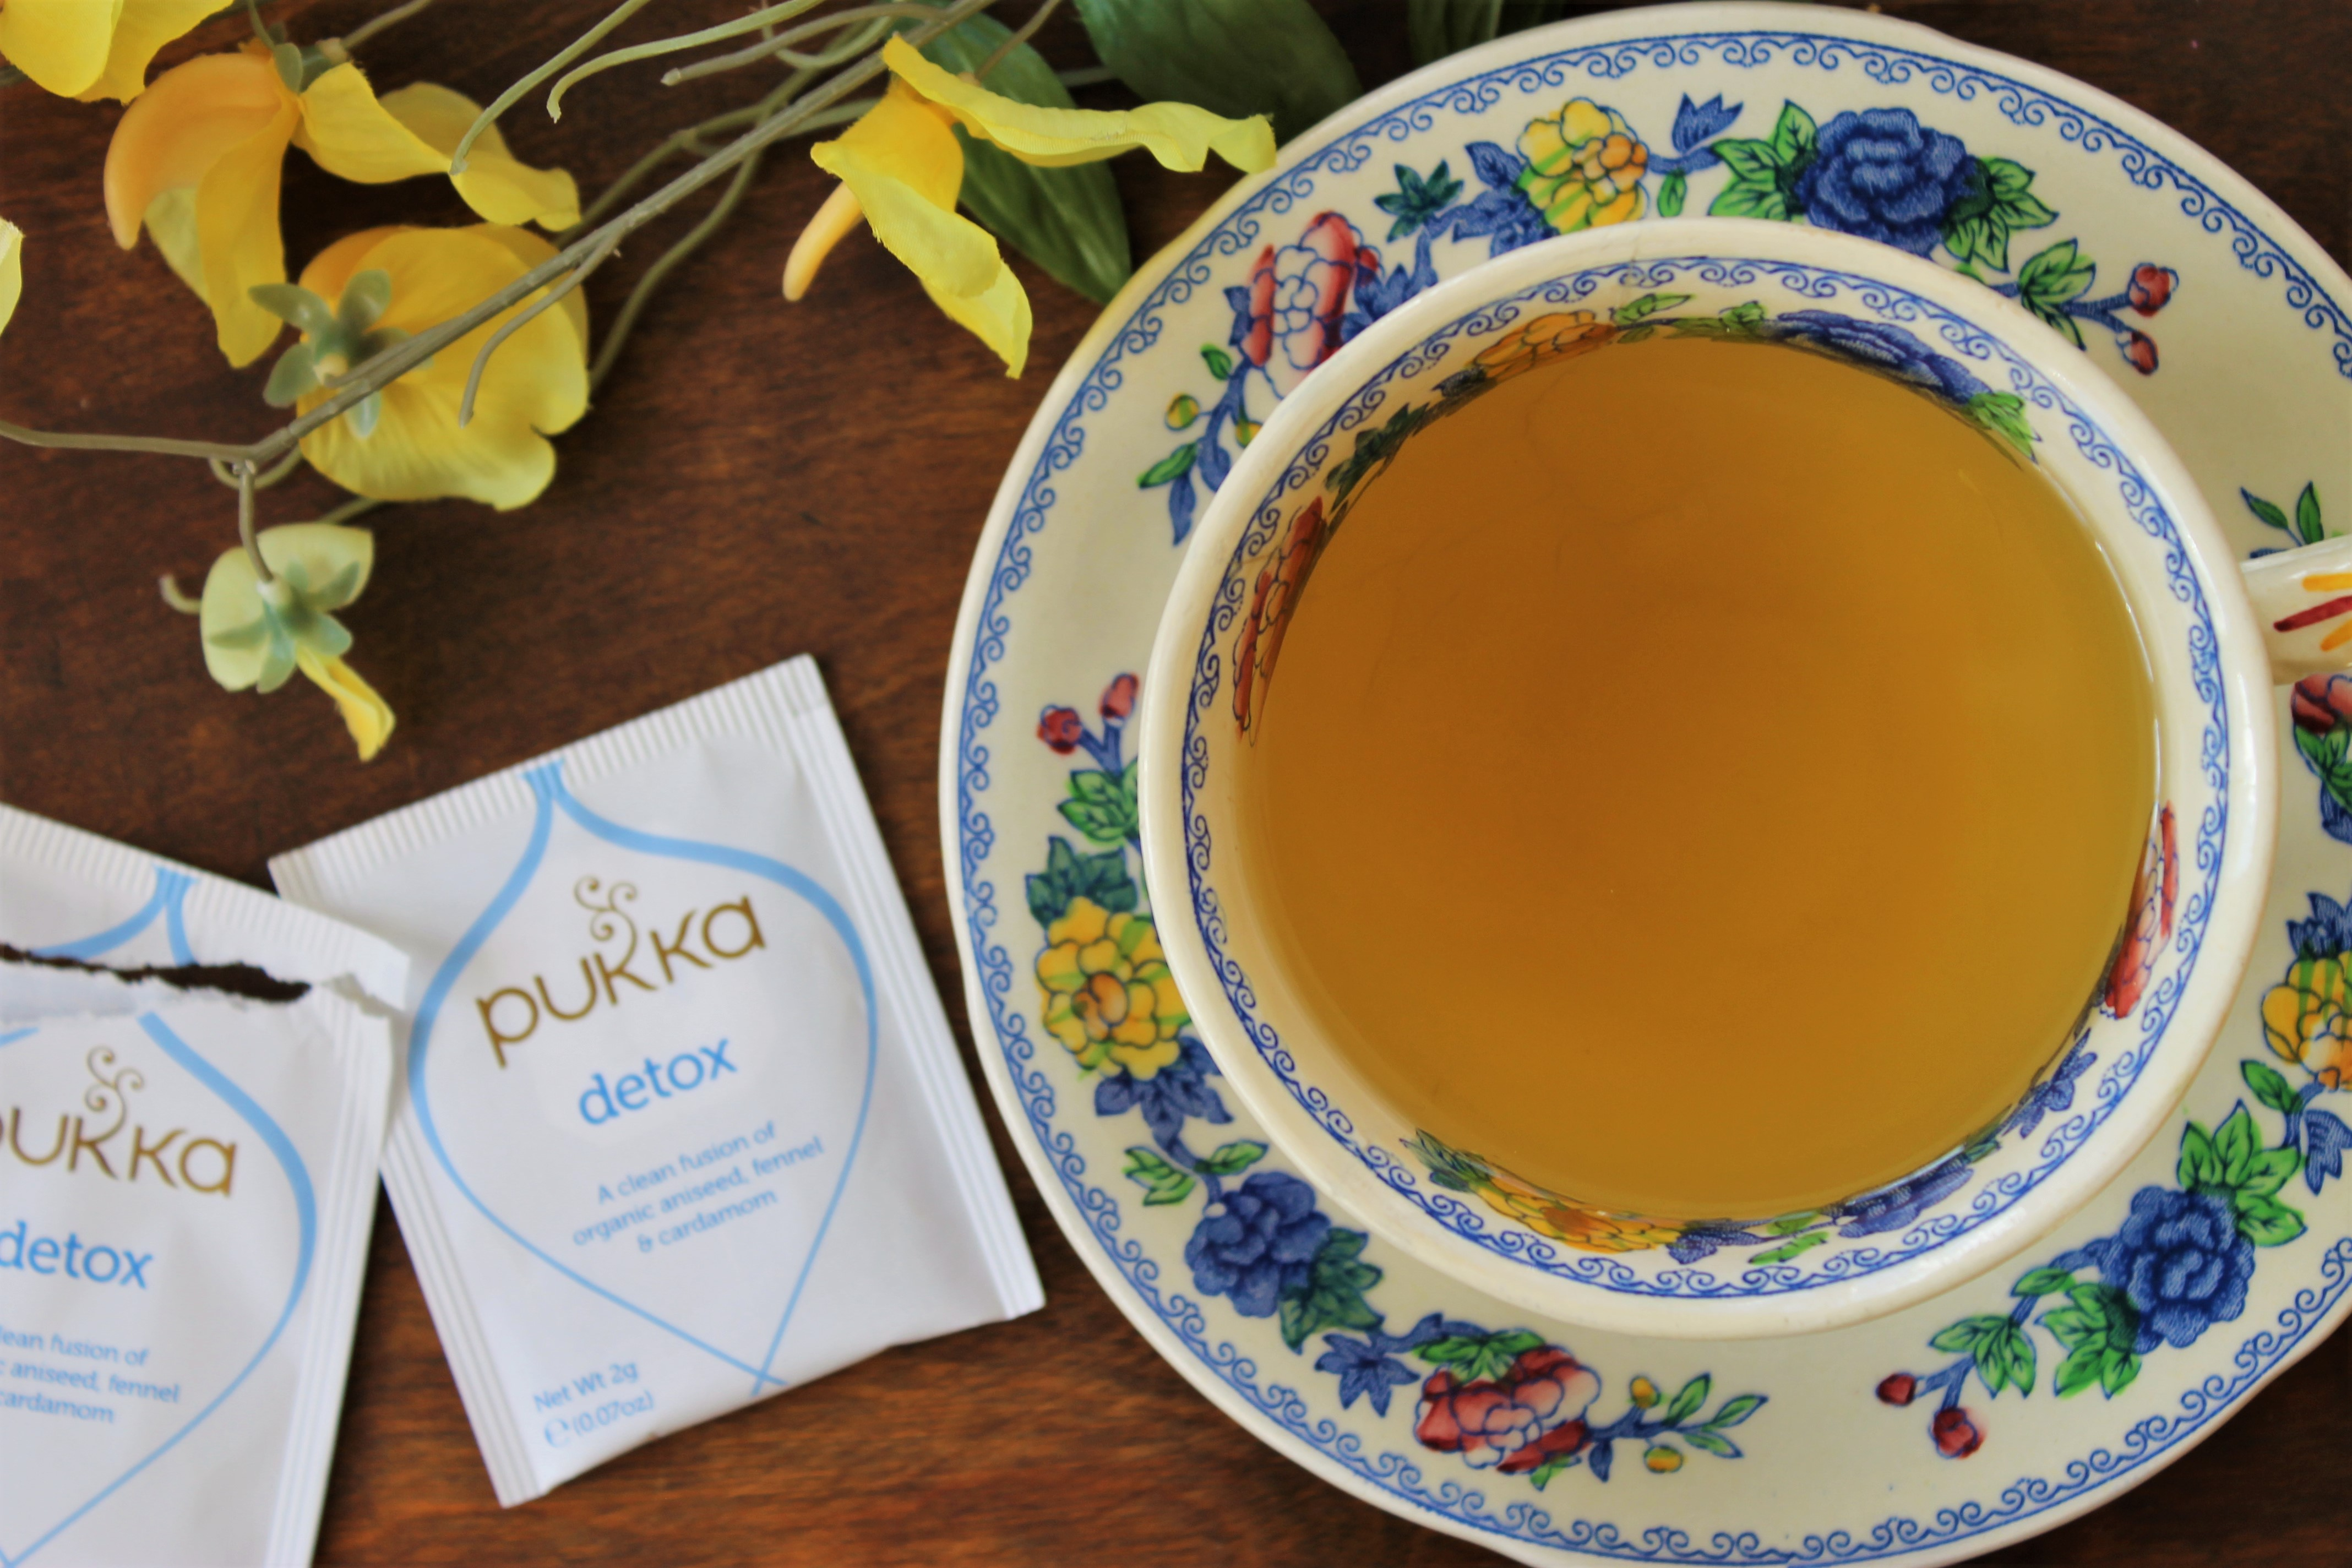 Pukka Detox Tea Review